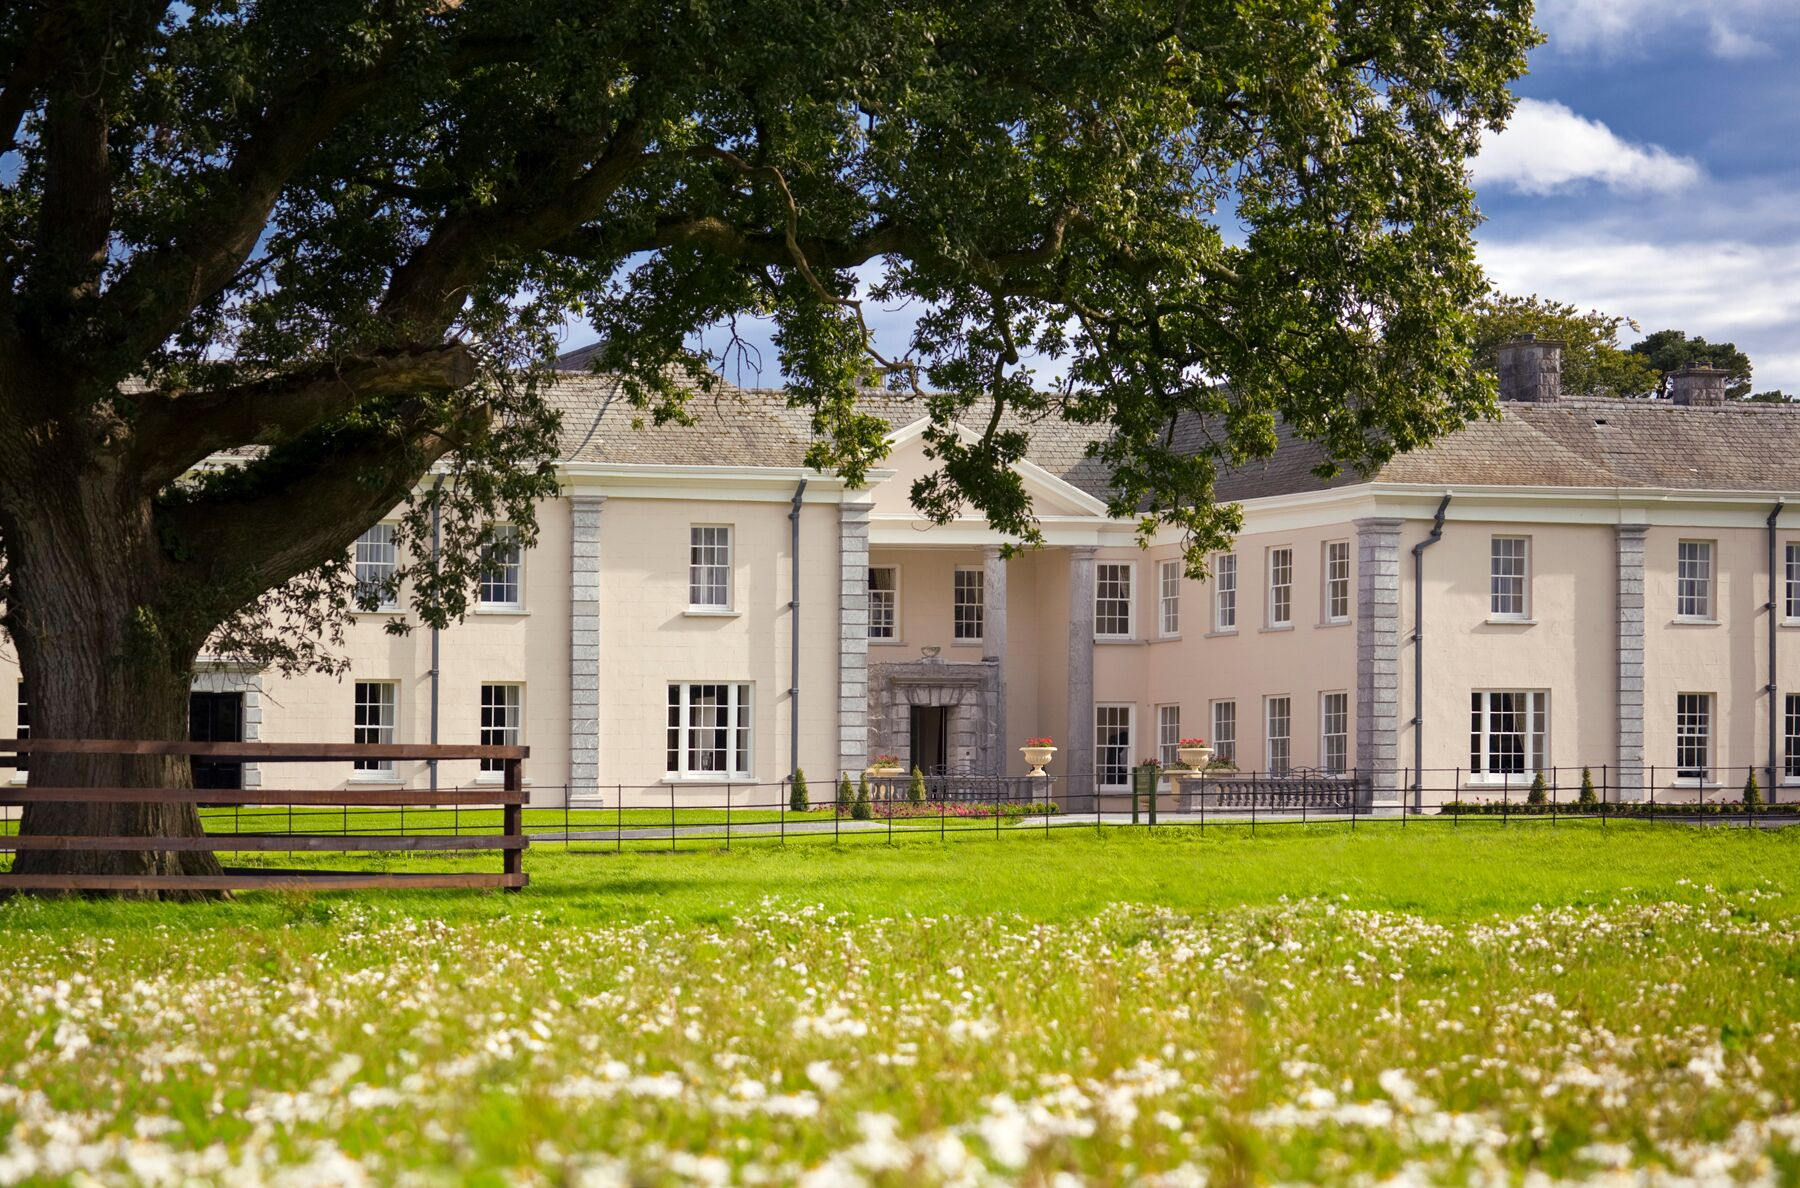 Castlemartyr Resort have some lovely ways to treat your mum this Mother's Day